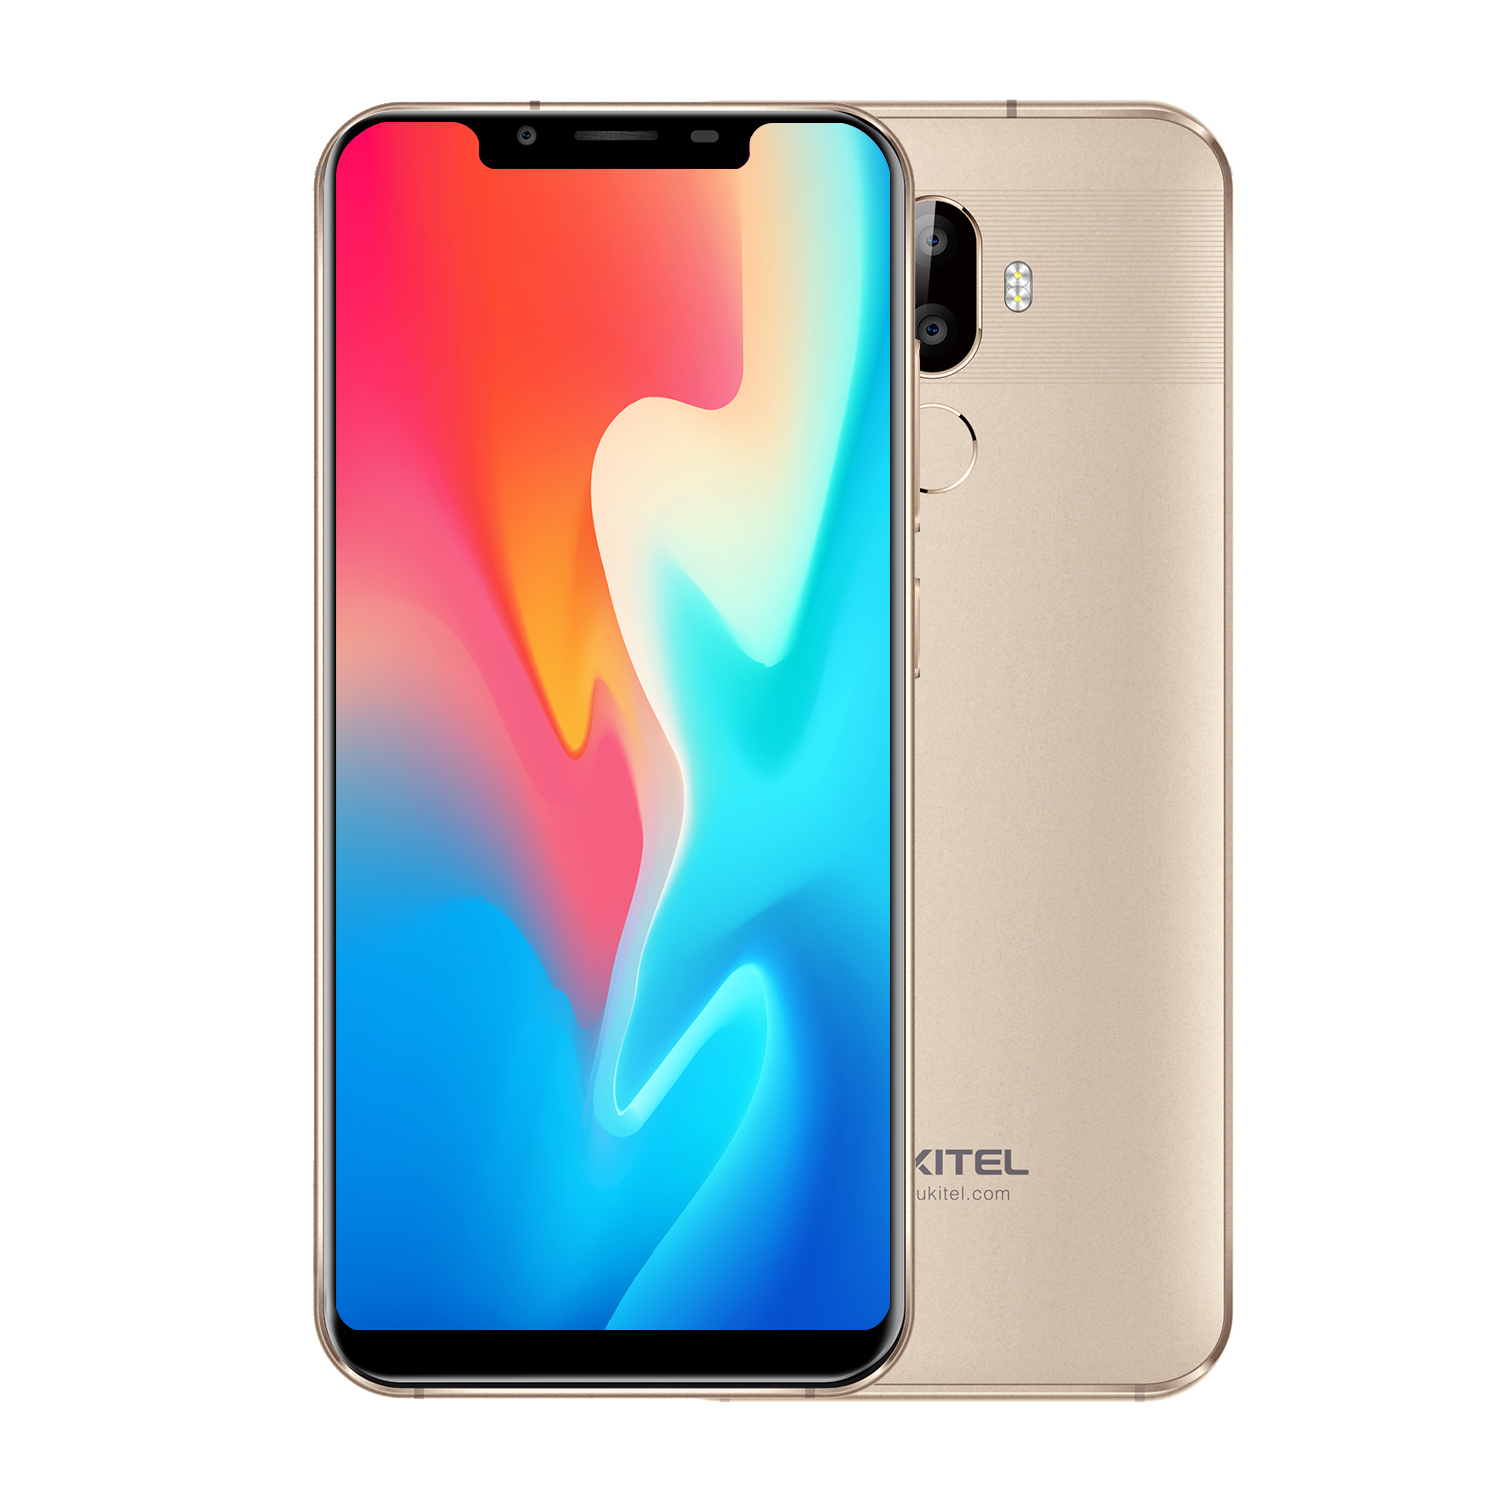 Oukitel U18 Face Id 4g Lte Smartphone 5.85 Inch 21:9 Android 7.0 Octa Core 4gb Ram 64gb Rom 4000mah 16mp+13mp Mobile Phone